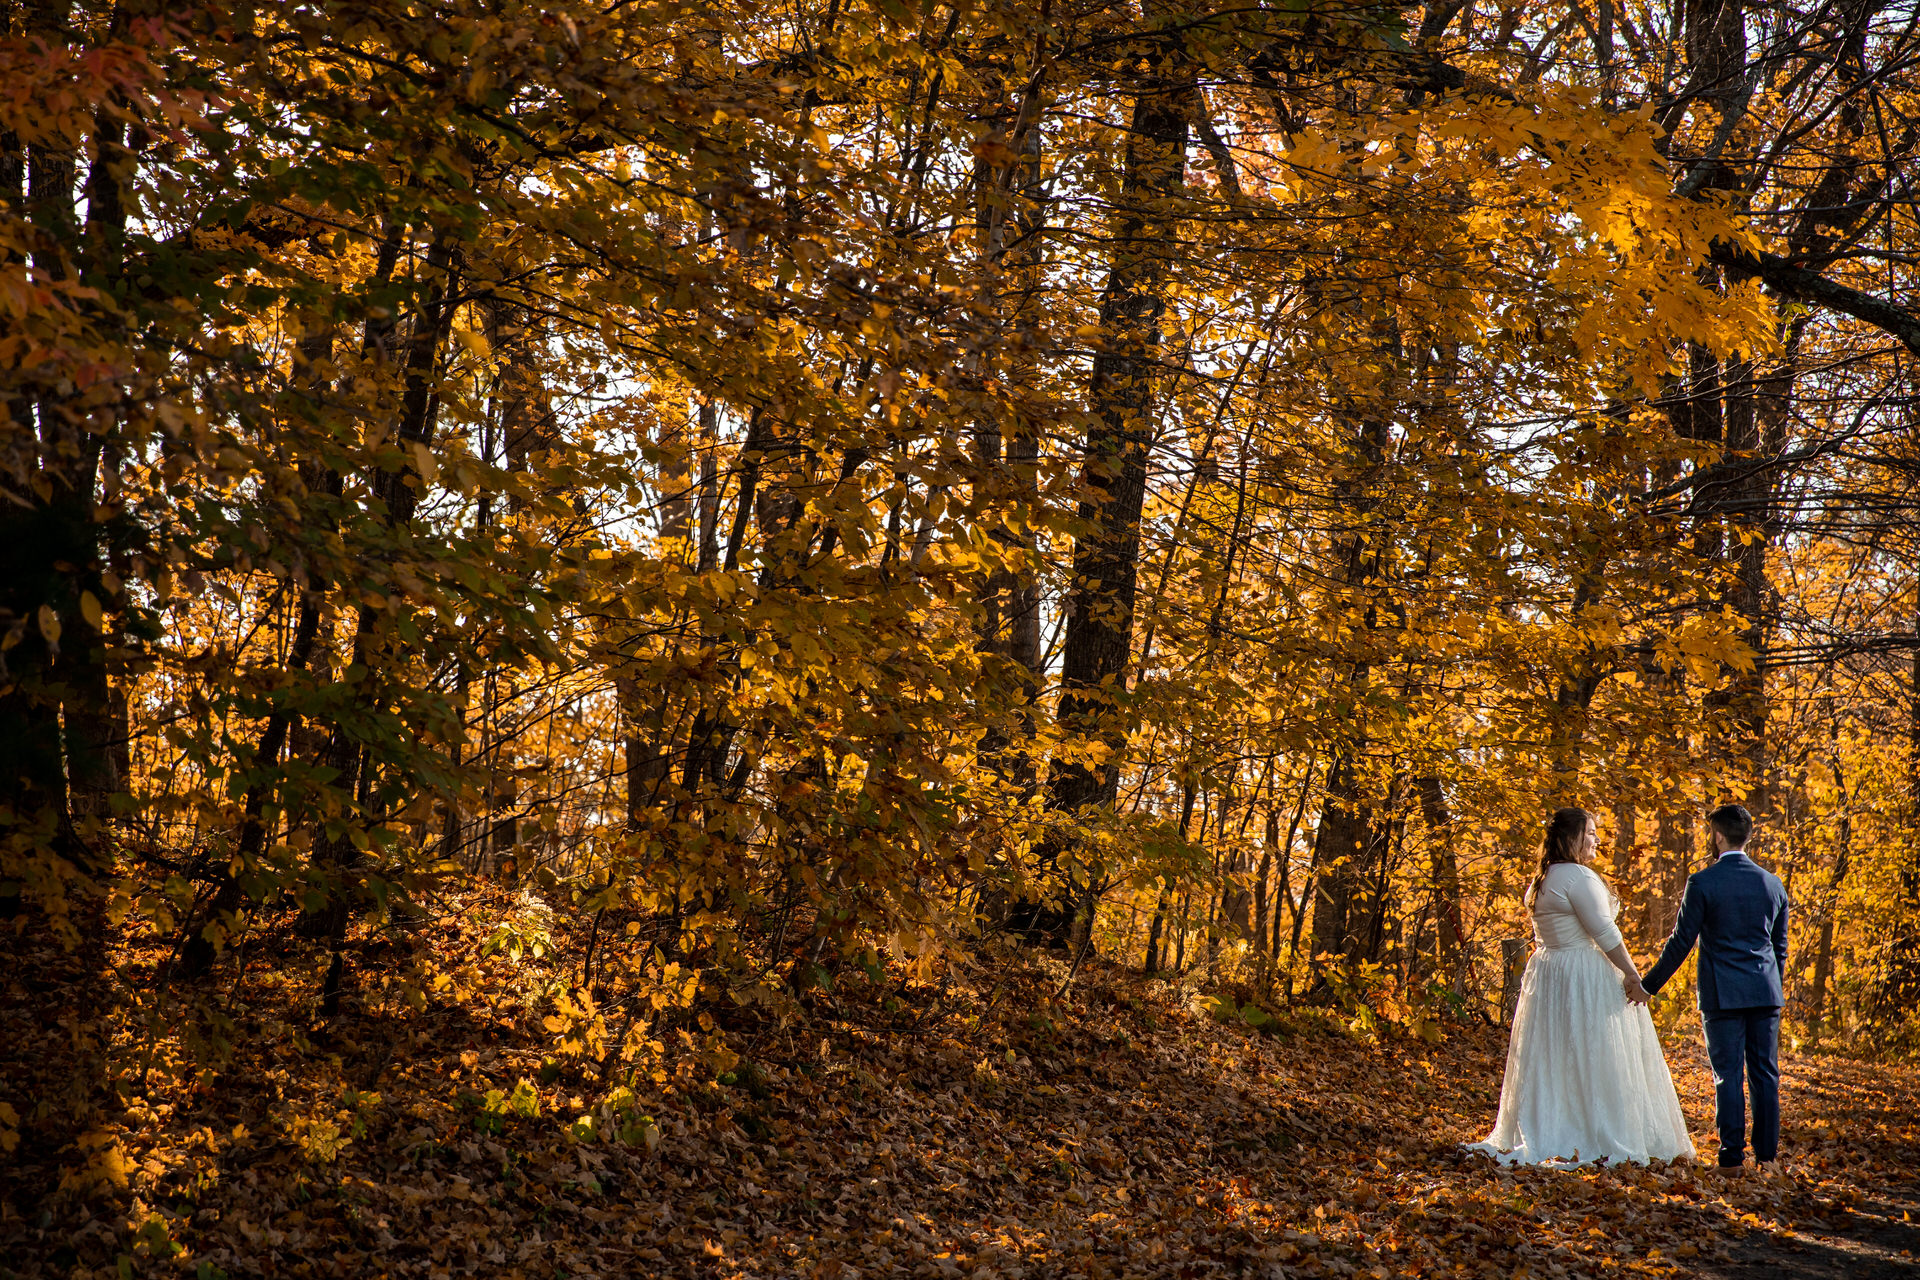 Balsam Lake, Wisconsin - Couple walking in the fall colors during a private portrait session.